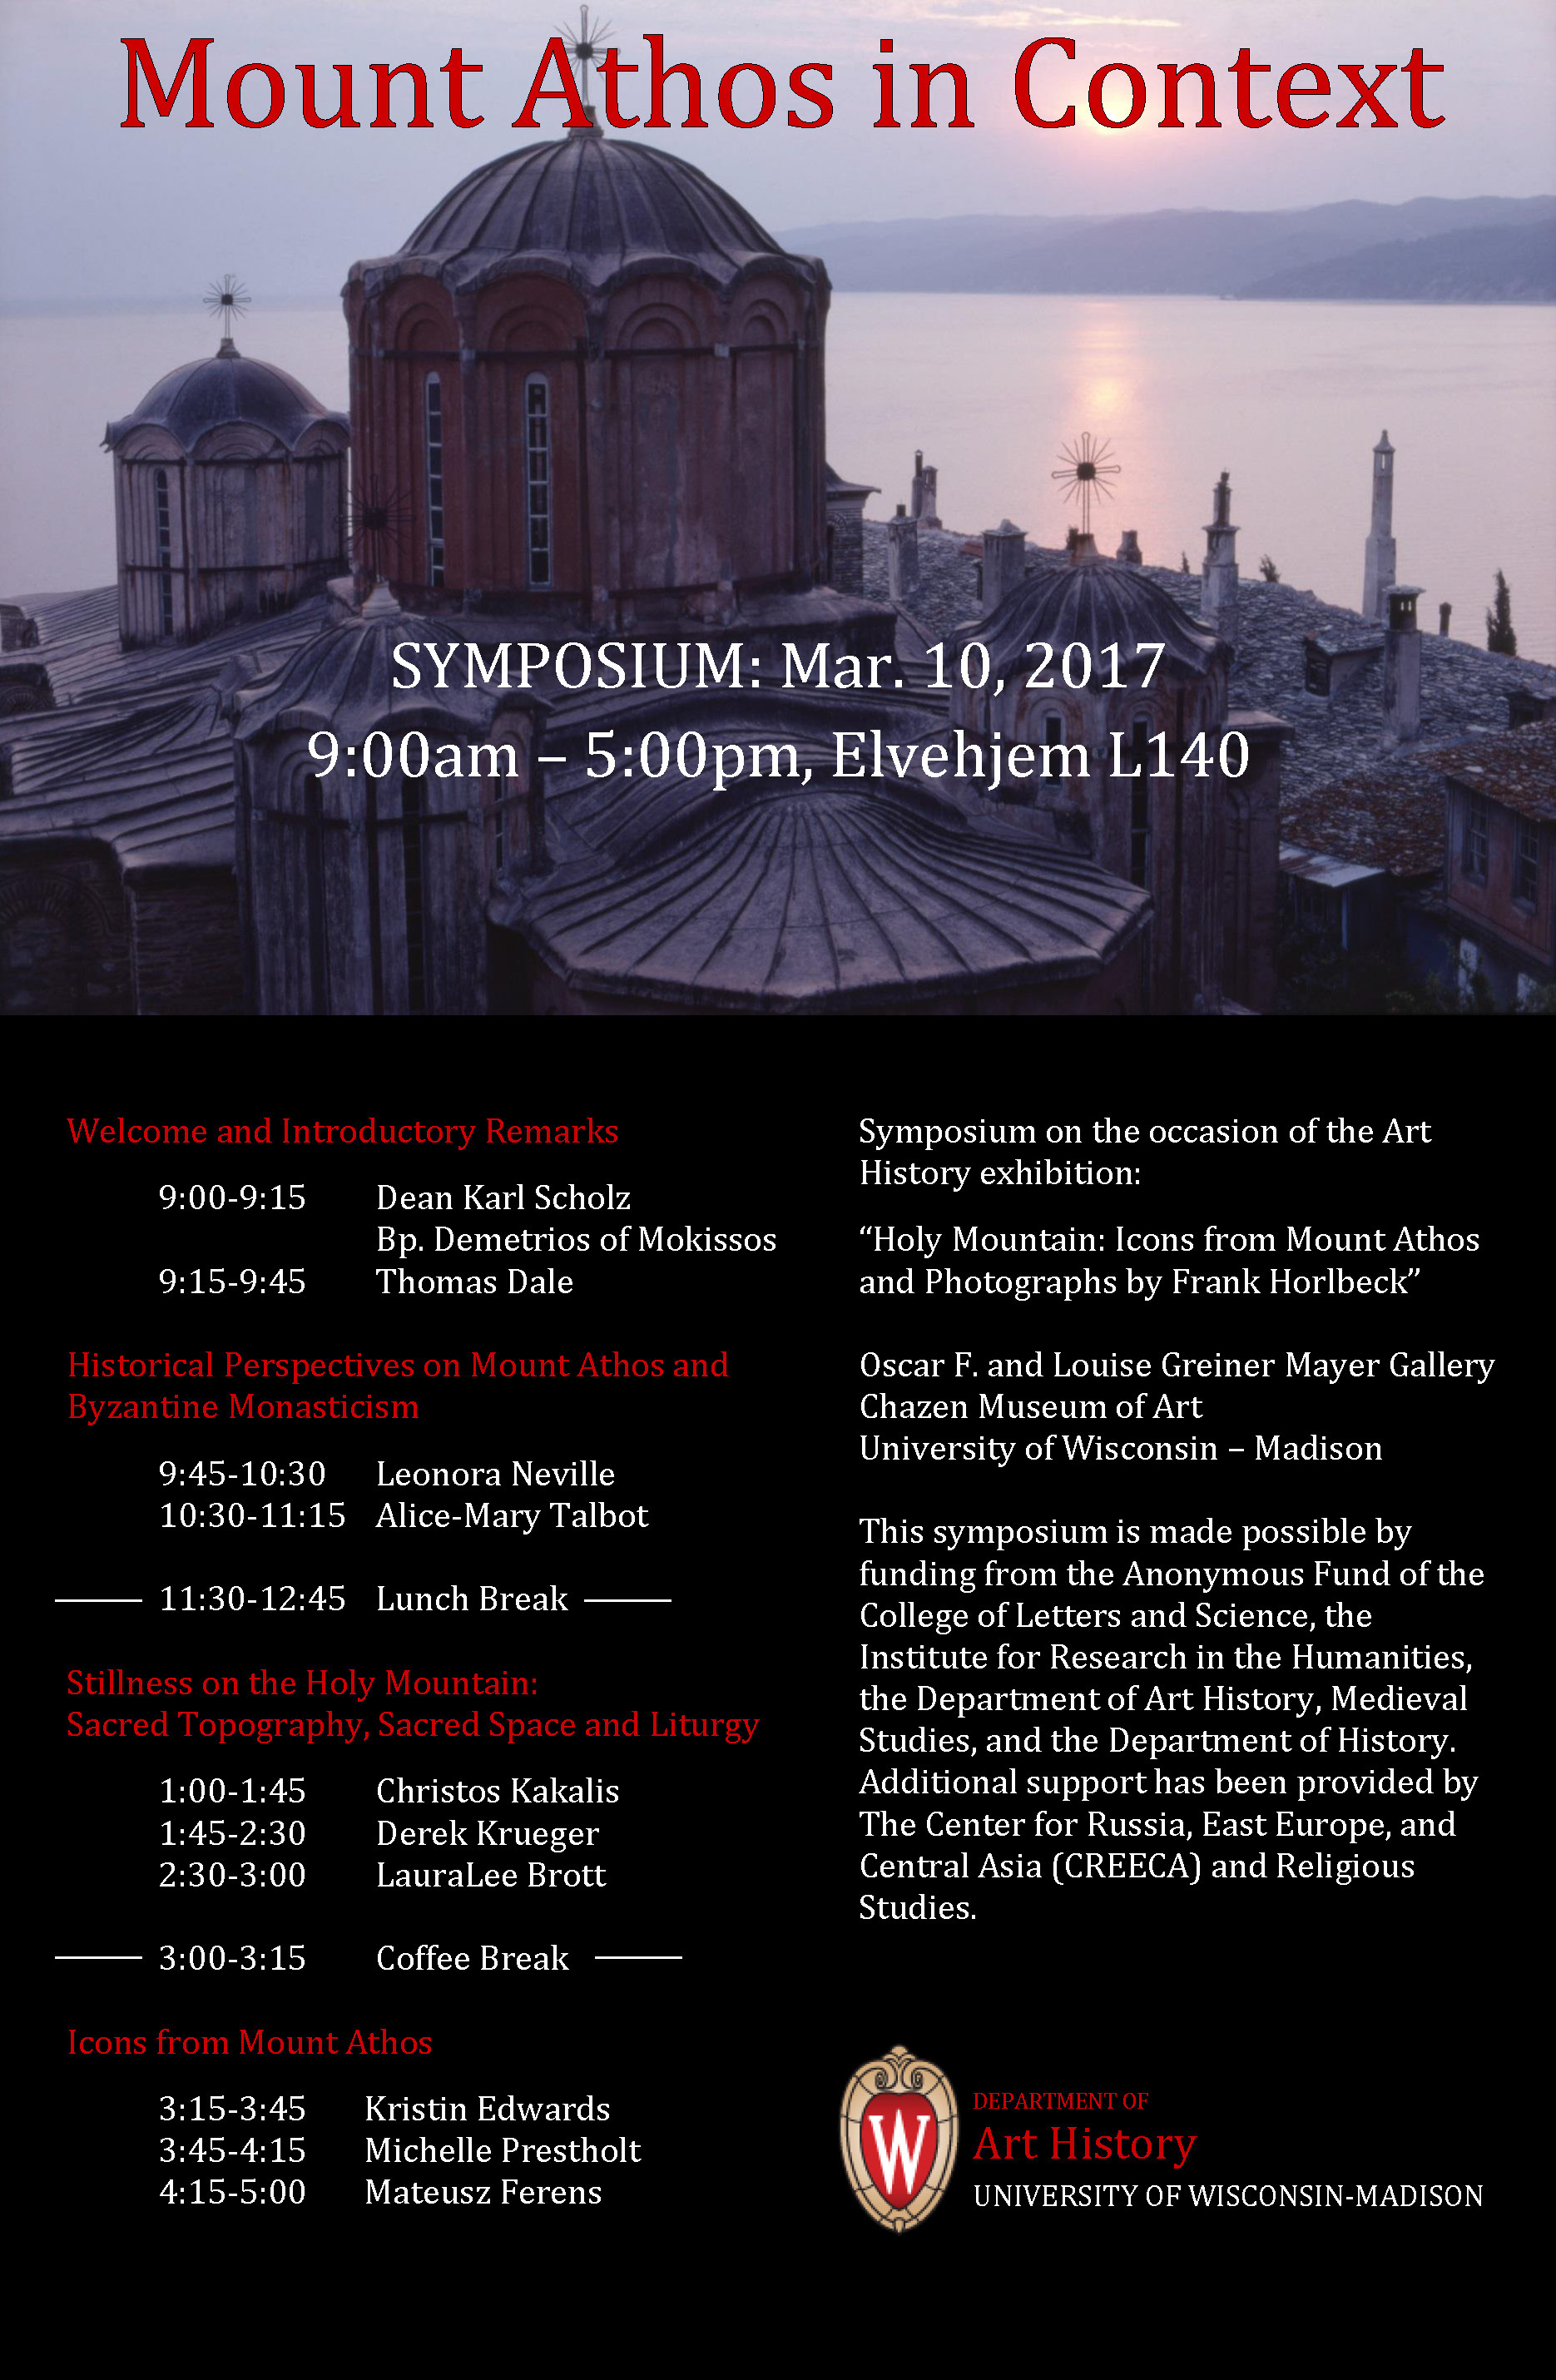 """Image of a poster for the event """"Mount Athos in Context"""" showing speaker names and an image of a cathedral"""